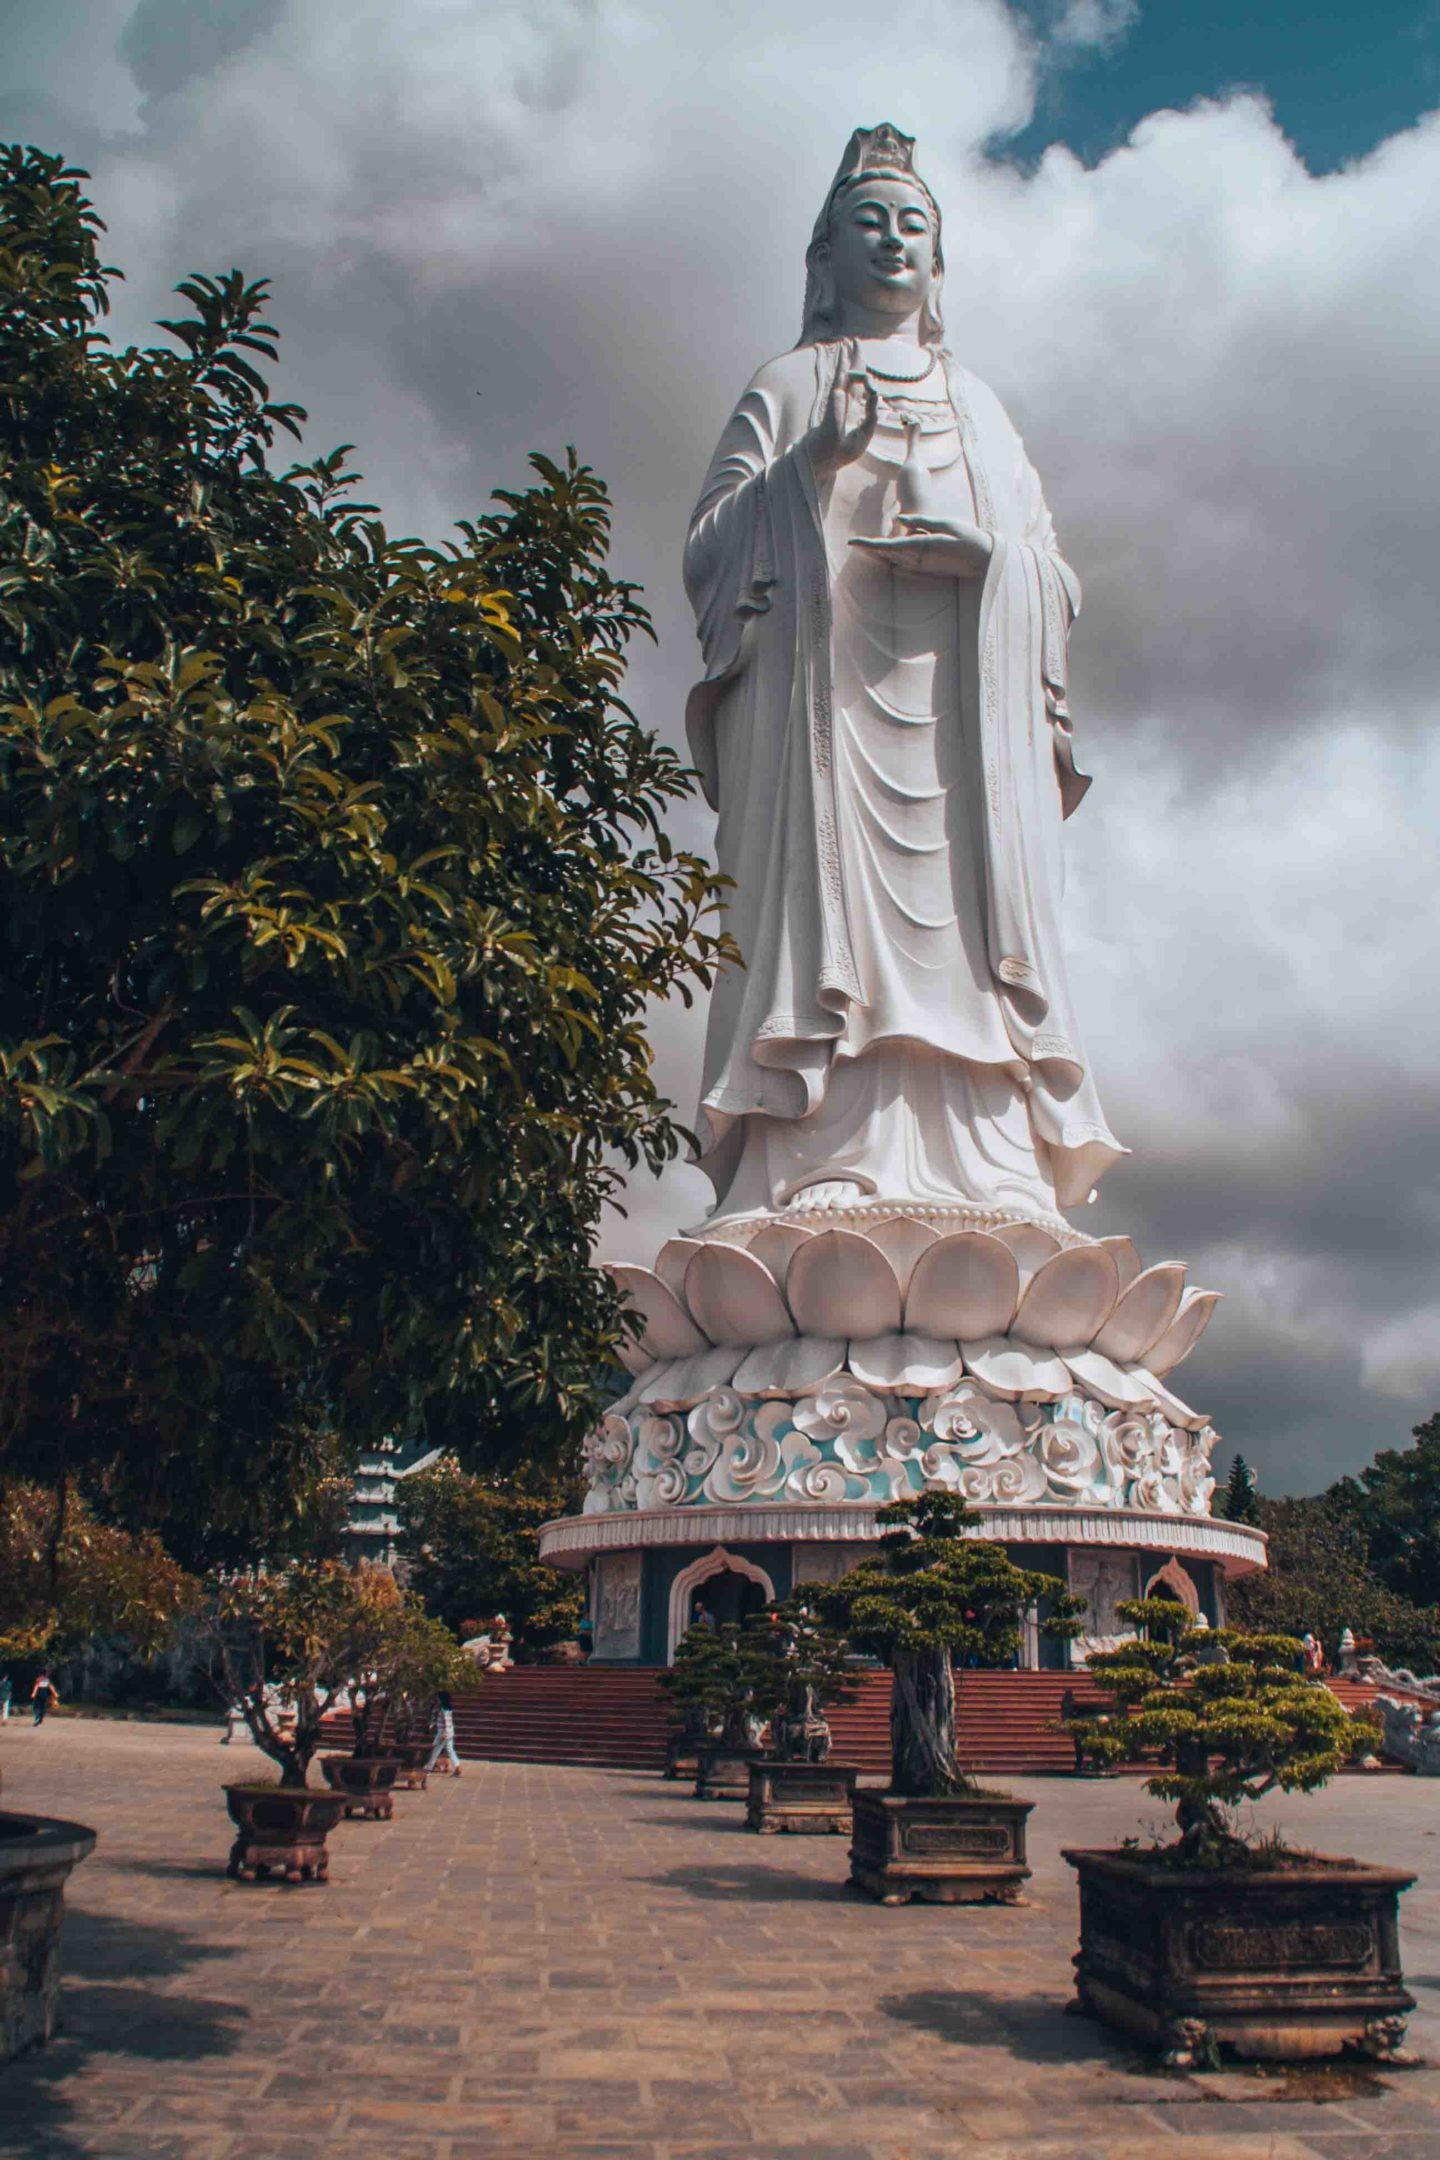 Explore Lady Buddha, the tallest statue in Da Nang and whole Vietnam